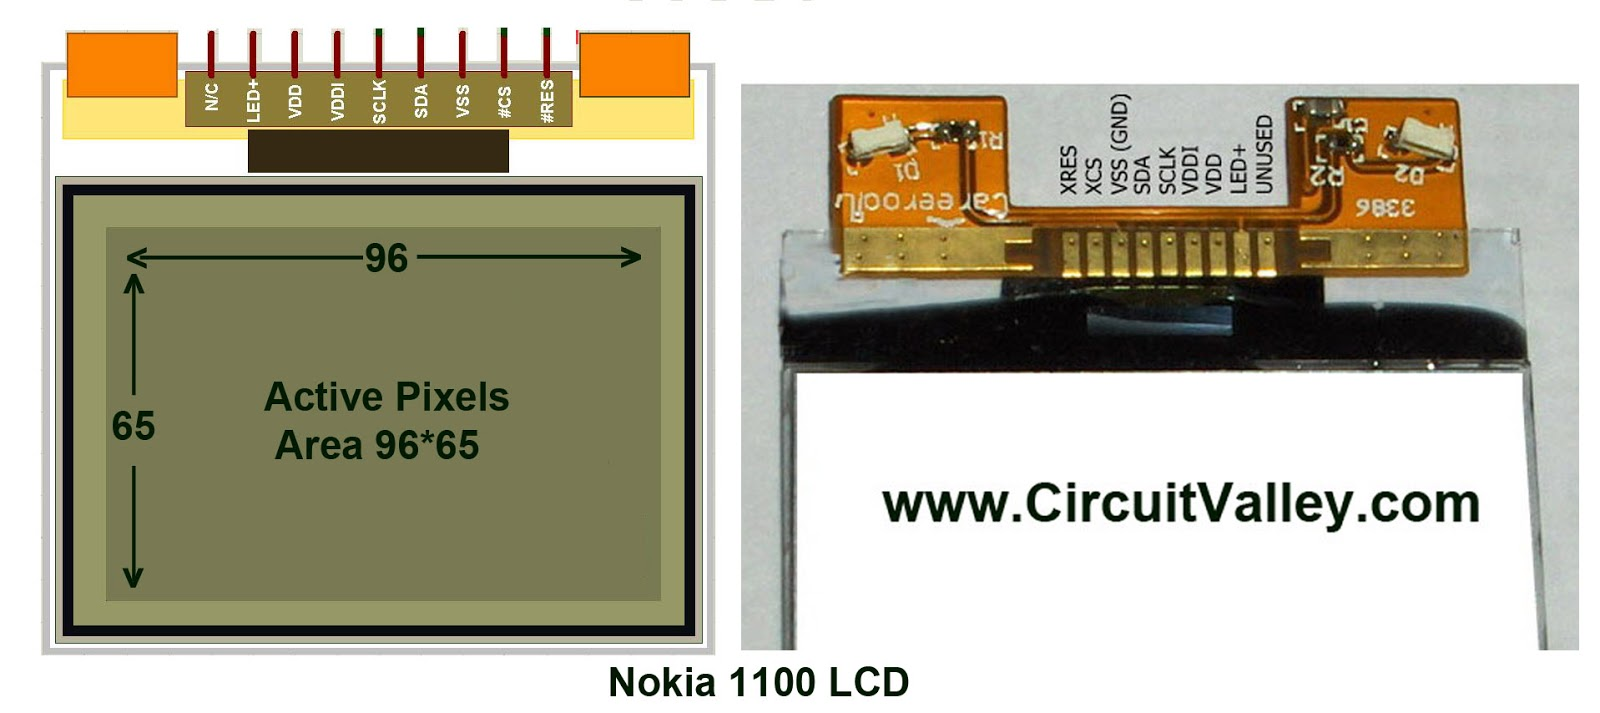 Embedded Engineering : Nokia 1100 LCD Interfacing with Microcontroller